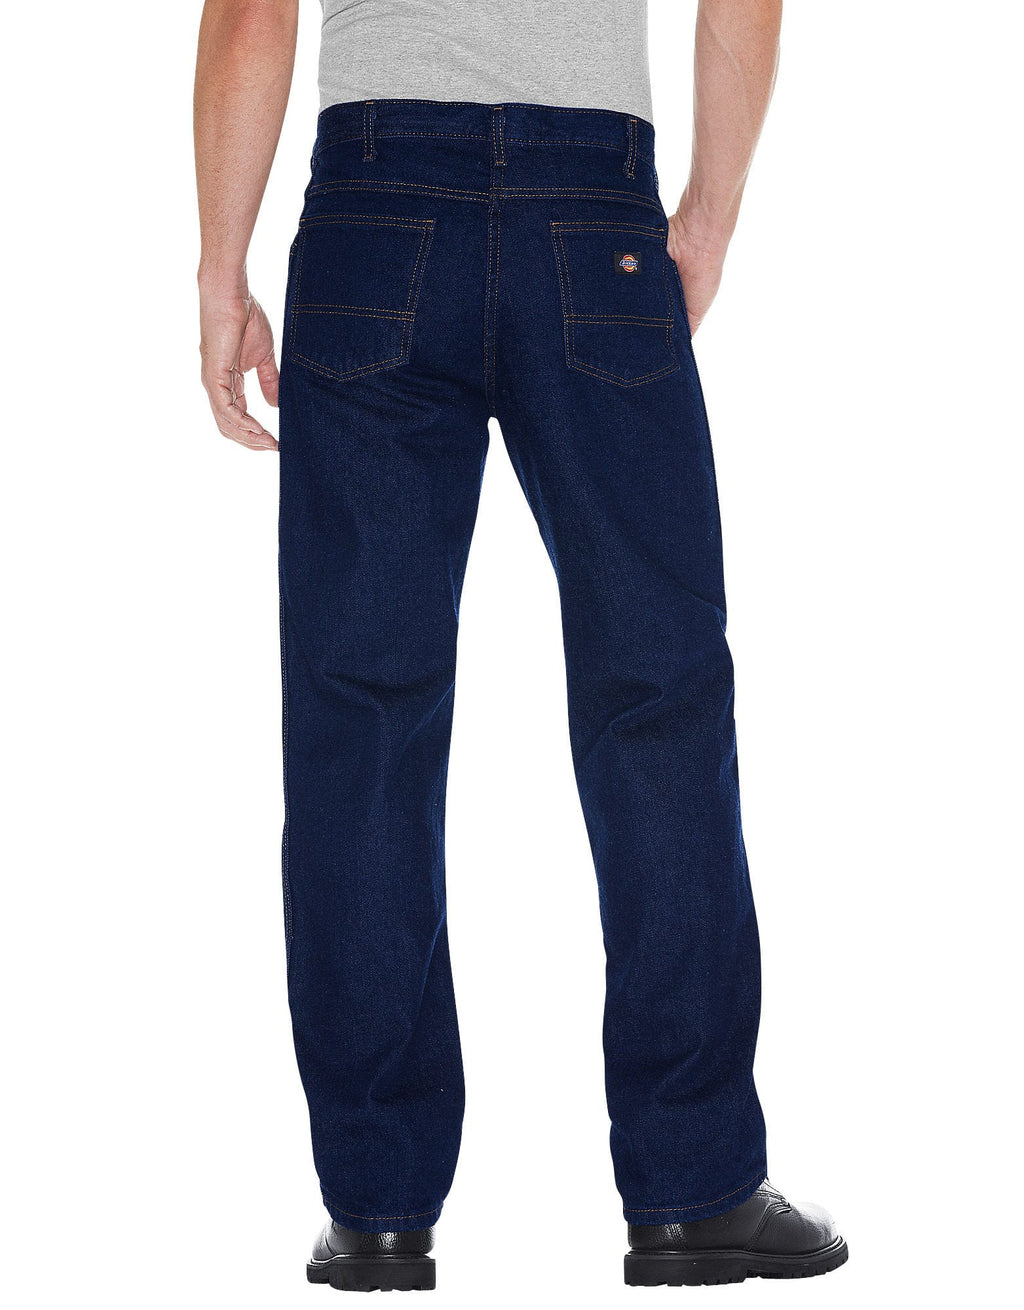 Dickies Mens Regular Fit Prewashed Jeans-2